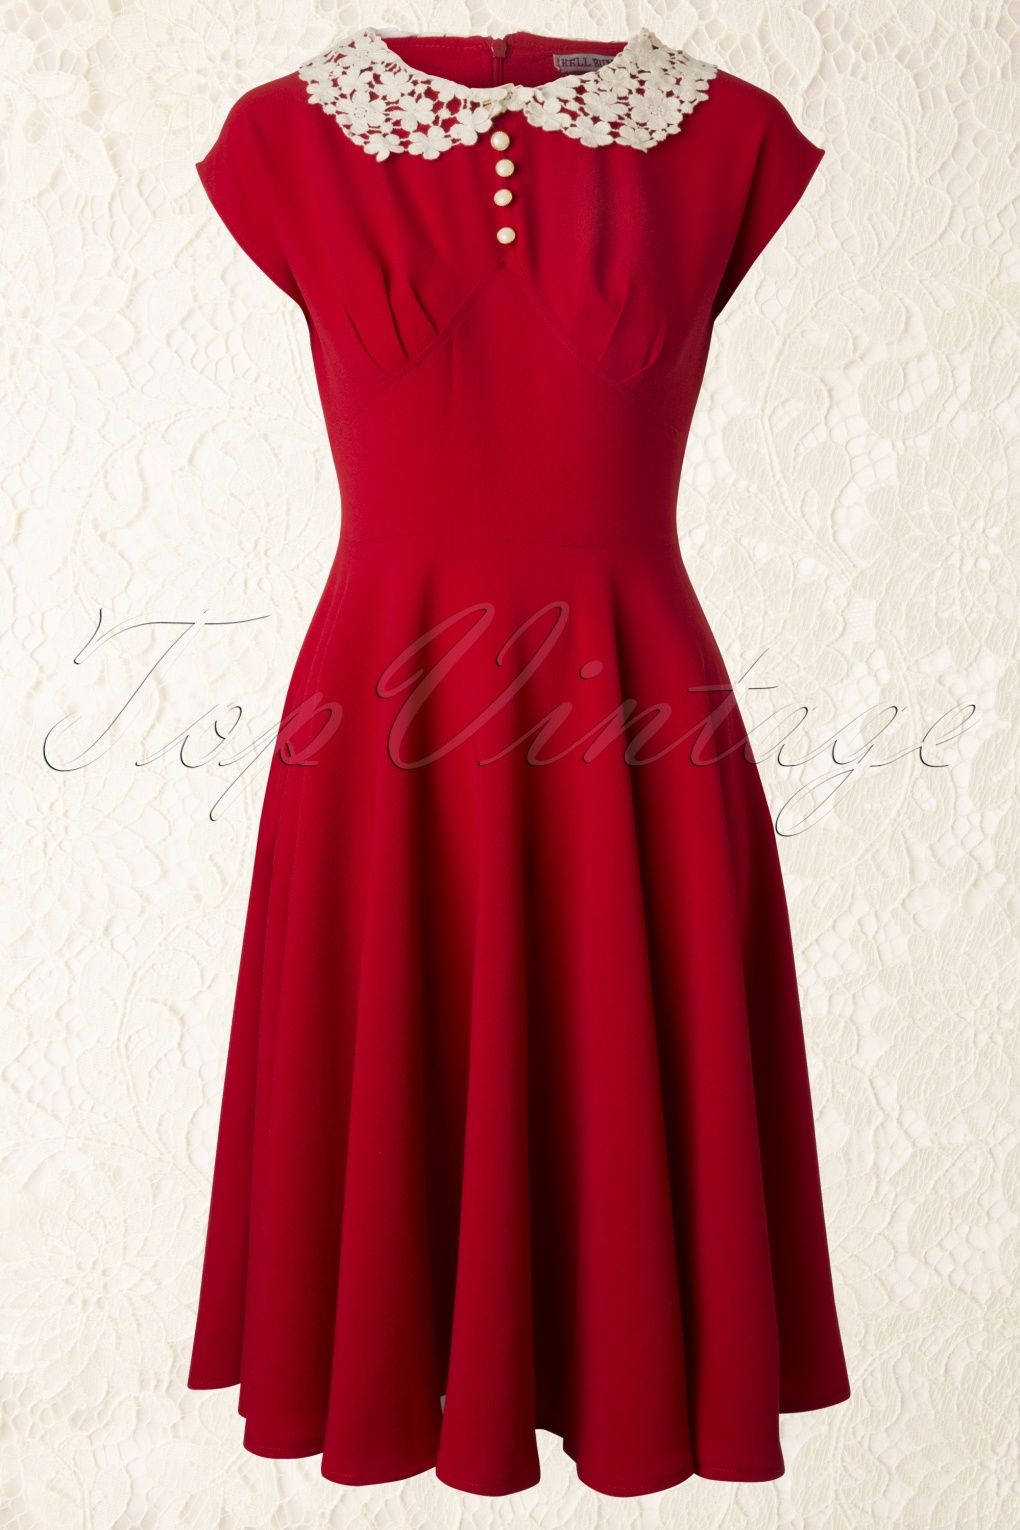 Bunny 40s Emilie Dress In Red Vintage Style Dresses Beautiful Dresses 40s Fashion [ 1530 x 1020 Pixel ]